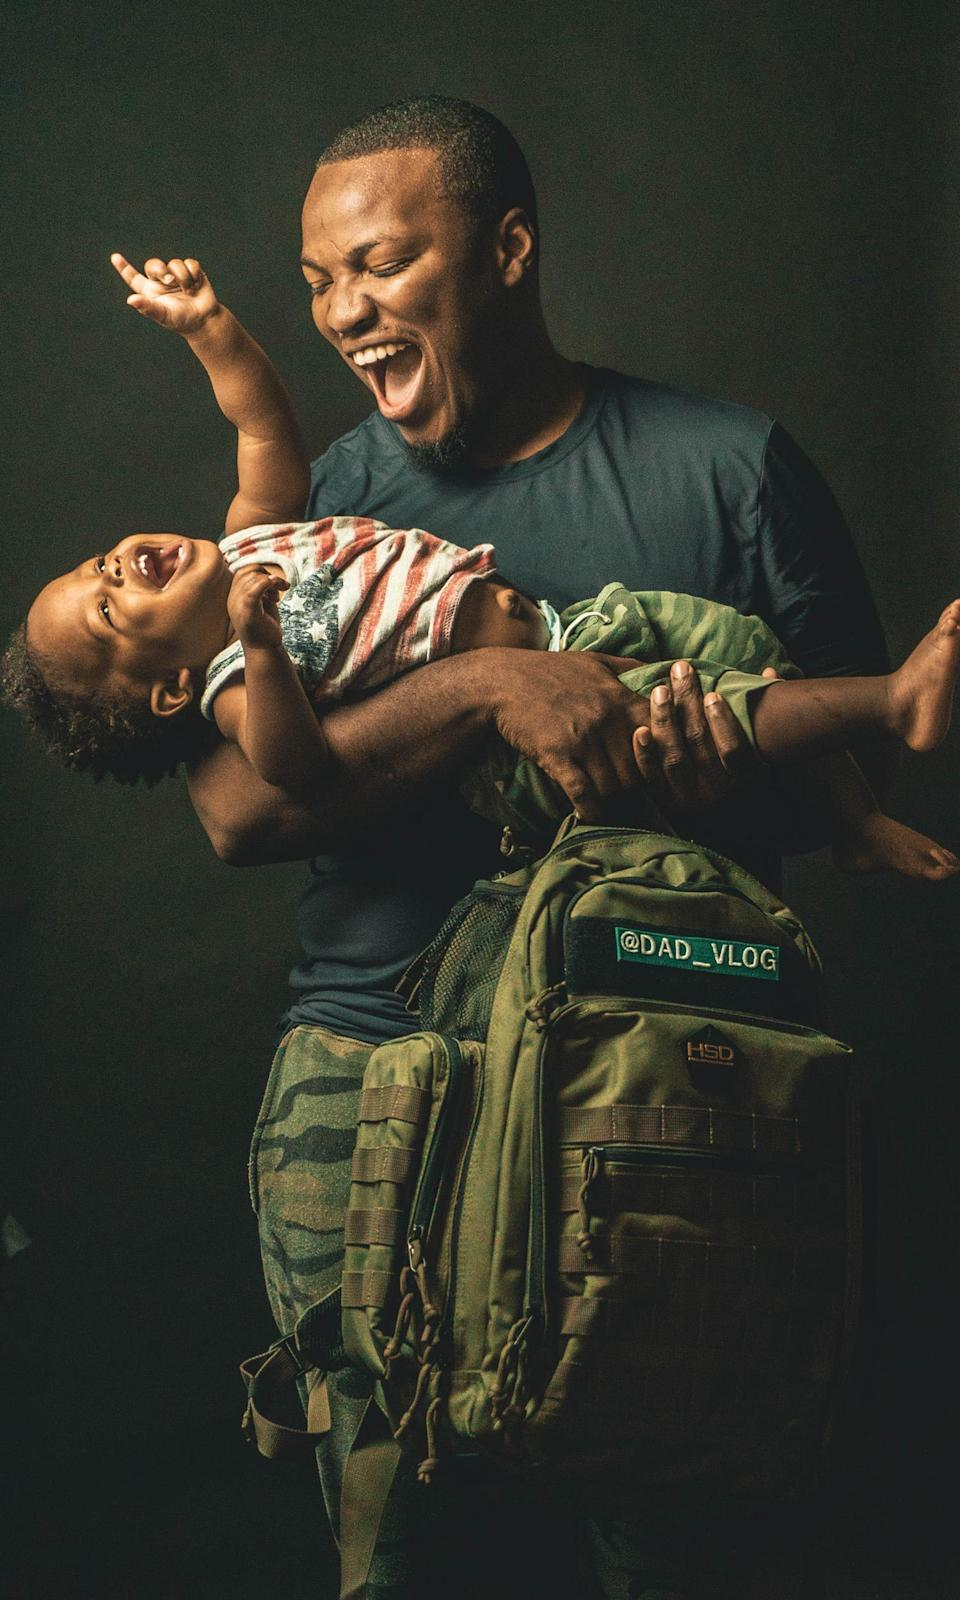 Ward captures cute and tender moments with his son Taj, 2, and shares them on social media. (D'Anthony Ward)